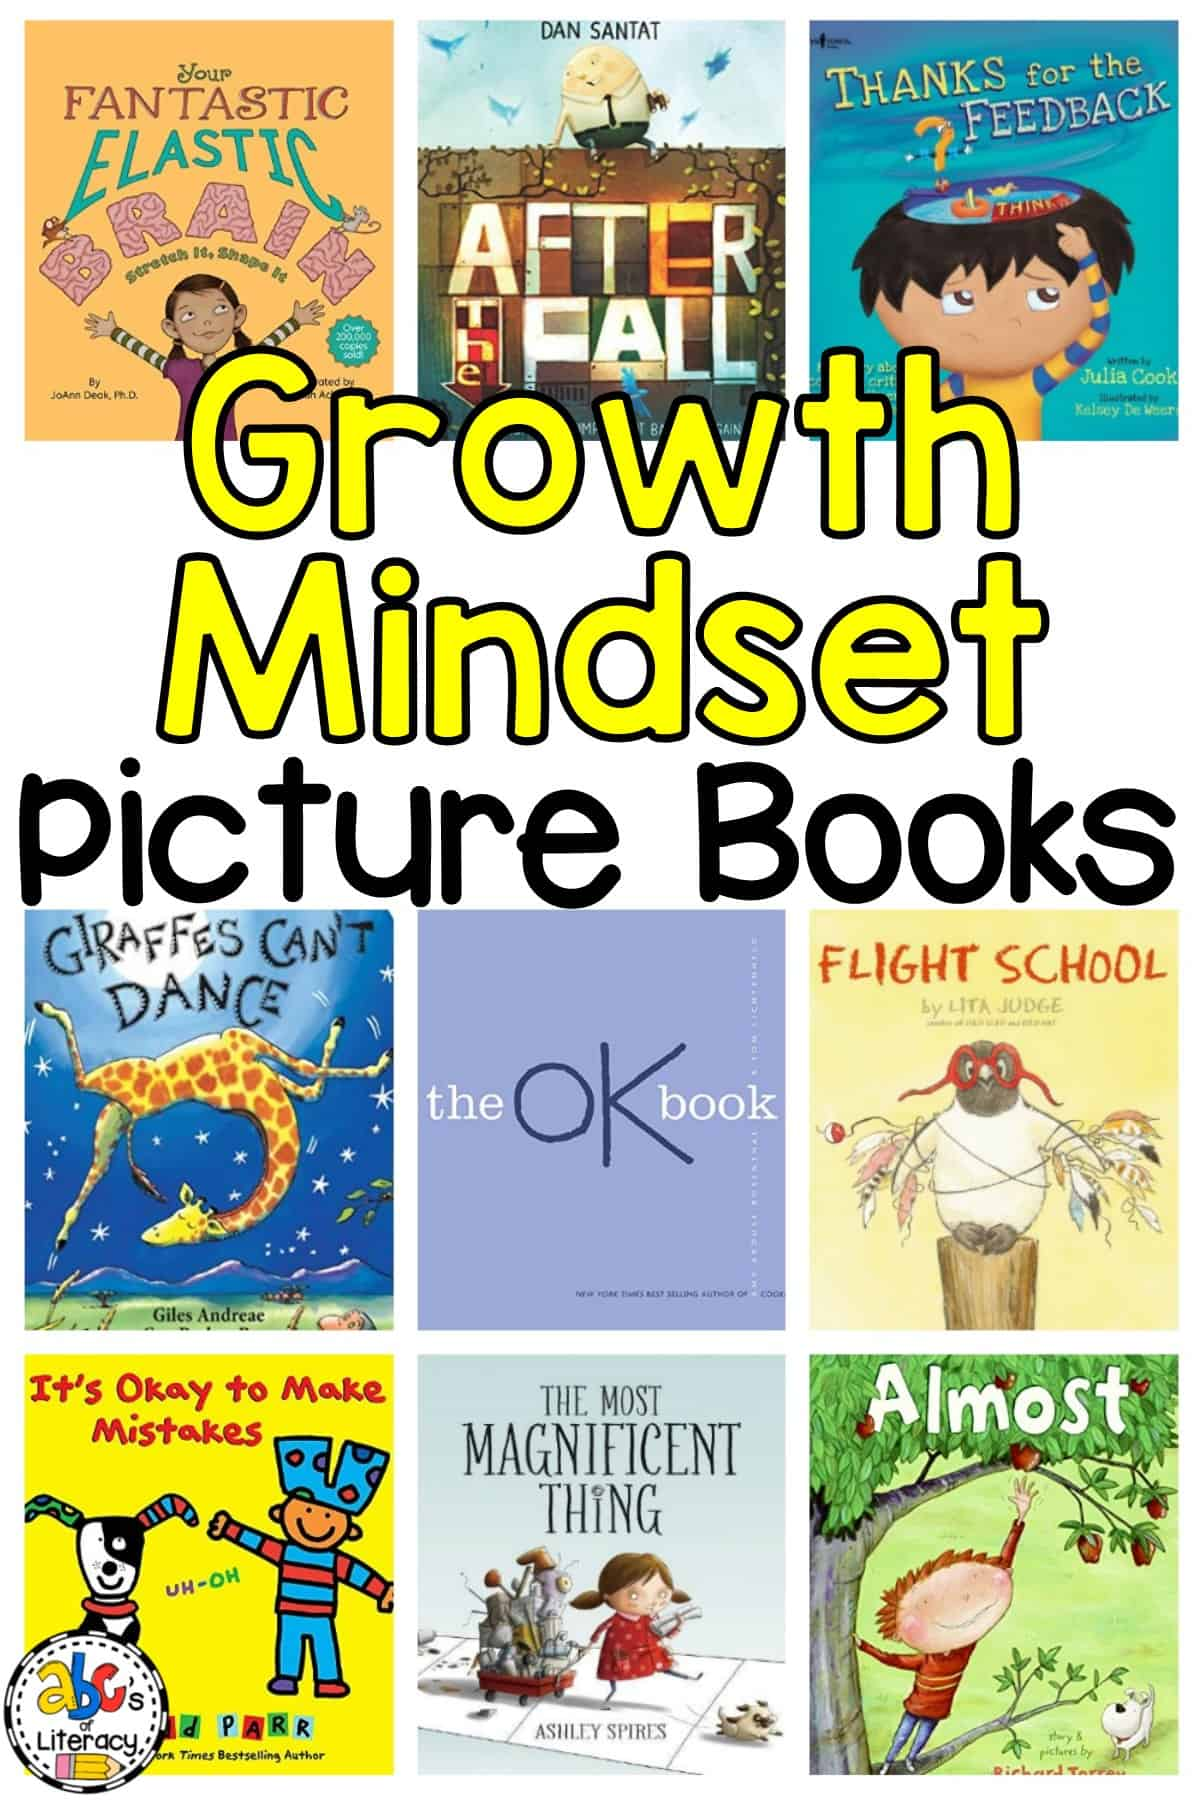 Books To Teach Growth Mindset, Growth Mindset Picture Books, Growth Mindset Read Aloud Books, The Power Of Yet Books